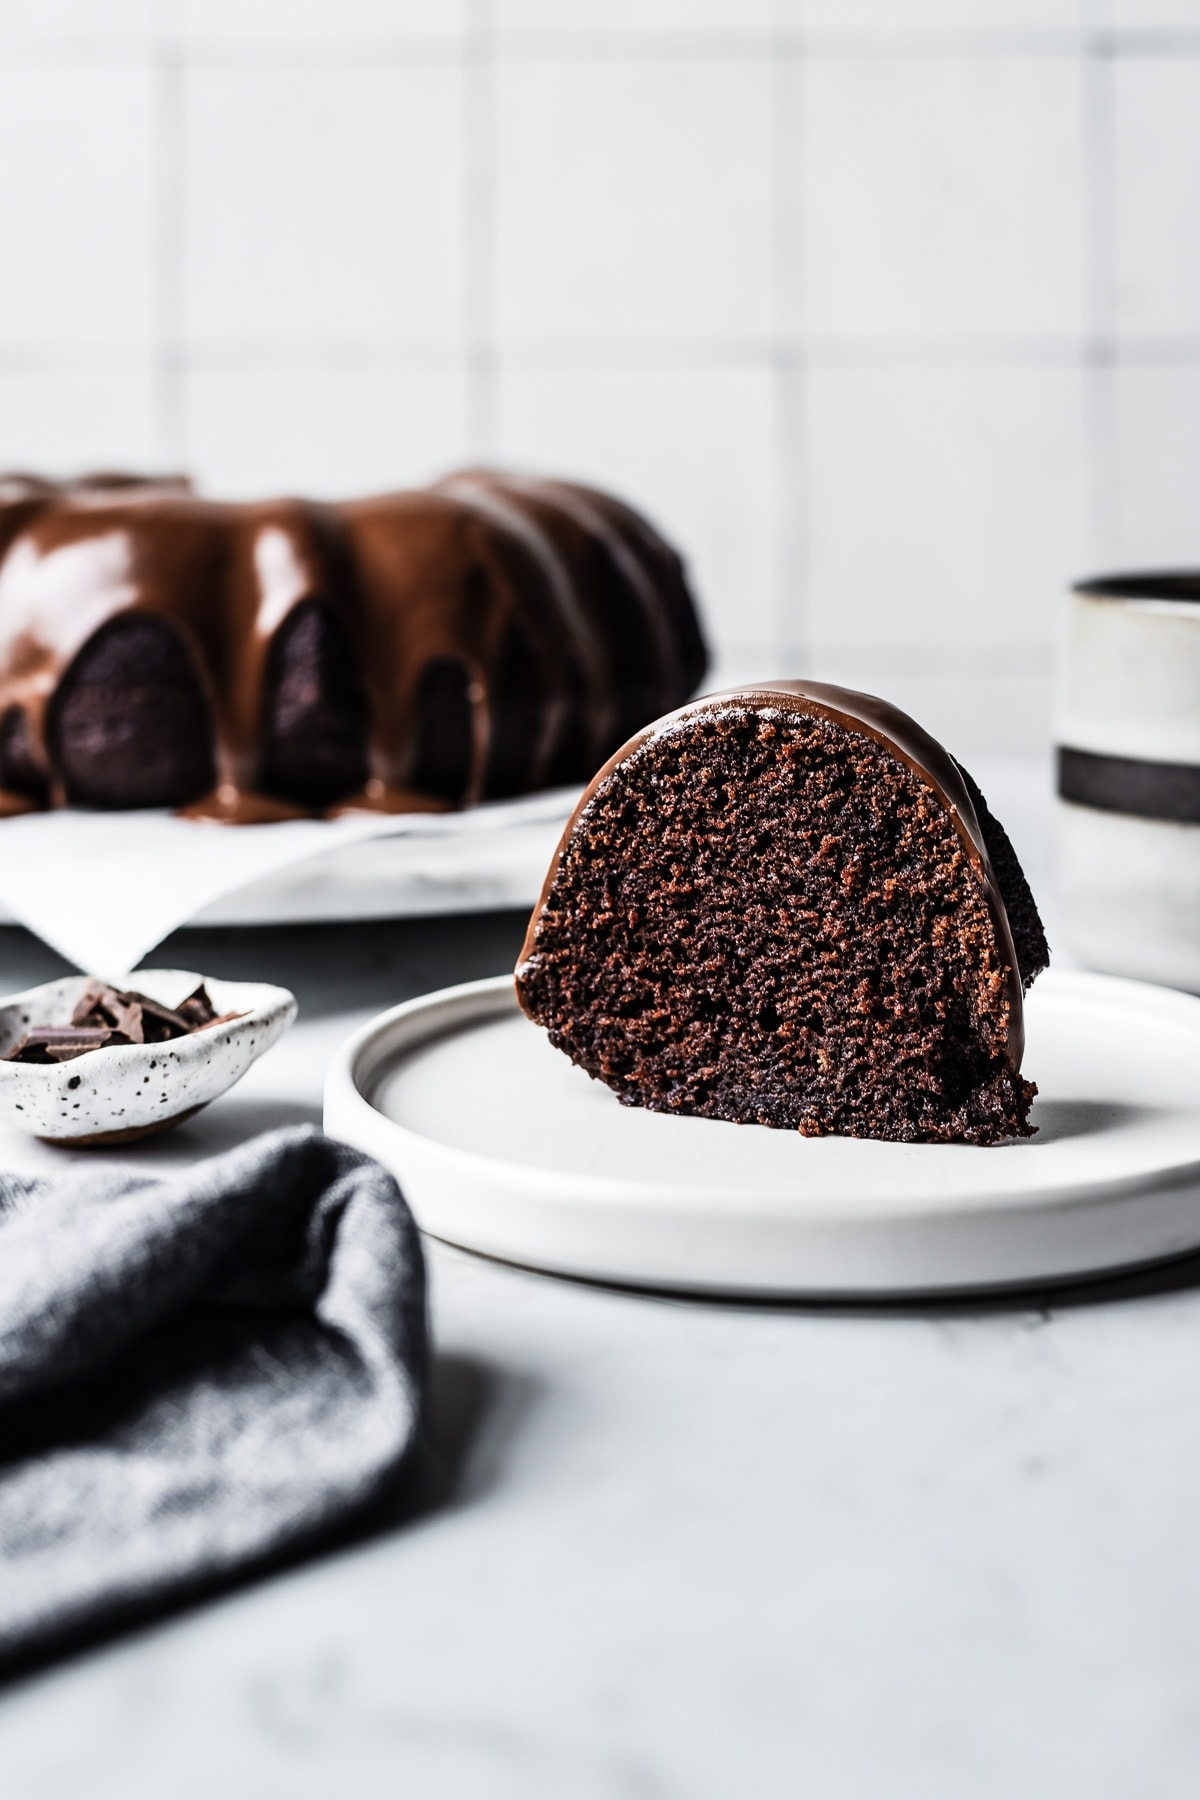 Slice of chocolate olive oil bundt cake on a white plate and marble counter with whole cake on platter in the background